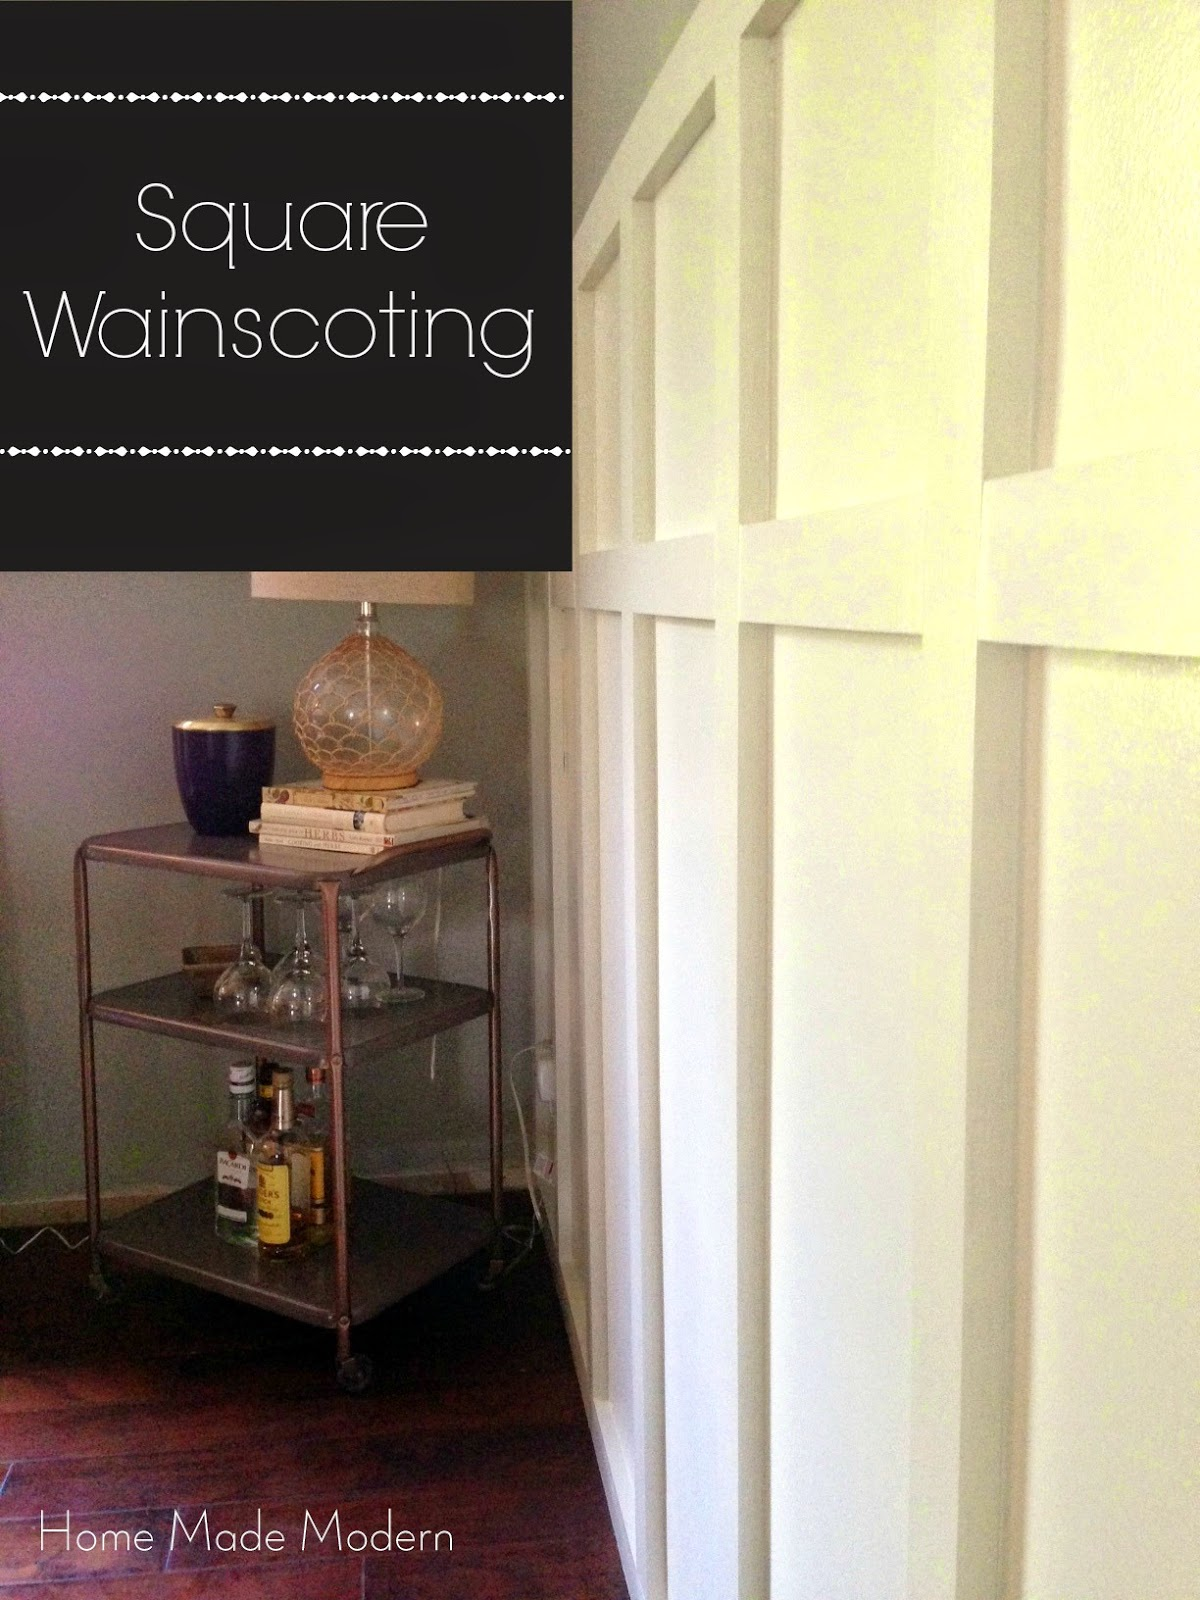 Wainscoting modern dining room - Home Made Modern Square Wainscoting In The Dining Room High